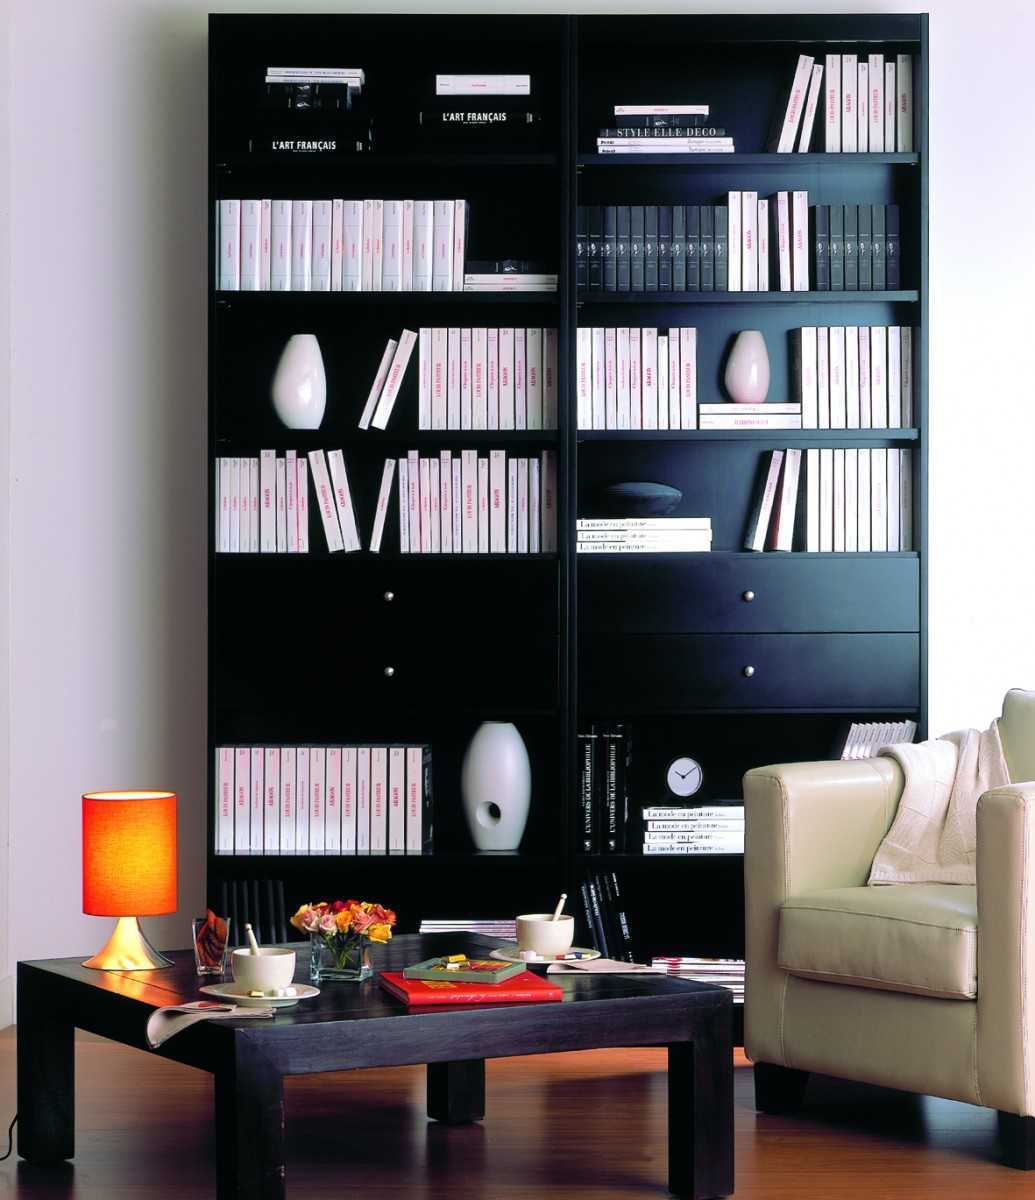 biblioth que oc ane la maison des bibliotheques. Black Bedroom Furniture Sets. Home Design Ideas